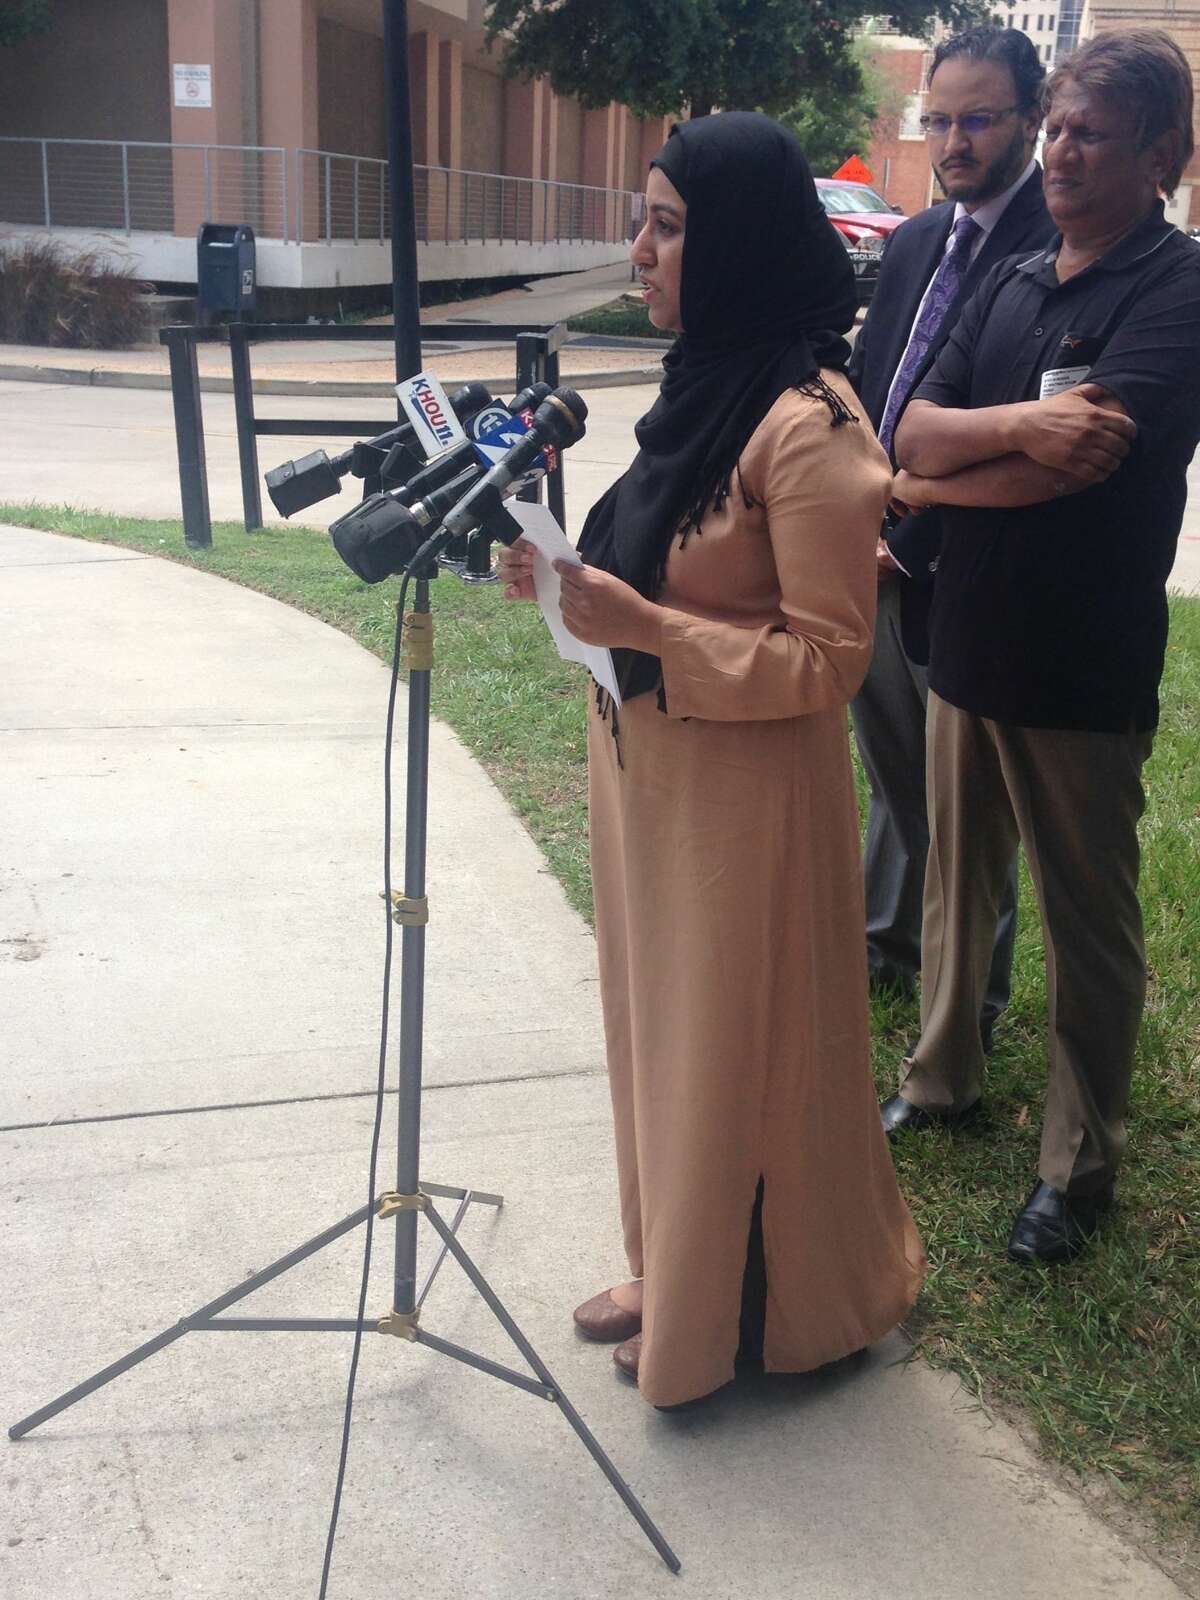 A Houston man shot Sunday morning near the Madrasah Islamiah mosque remained in the hospital Monday but was recuperating well, his wife said. Arslan Tajammul, a 30-year-old optometrist, was shot about 5:30 a.m. Sunday around the corner from the southwest Houston mosque, during what police said appeared to be an attempted robbery. His wife, Syeda Bokhari, spoke Monday at a press conference outside Ben Taub Hospital.